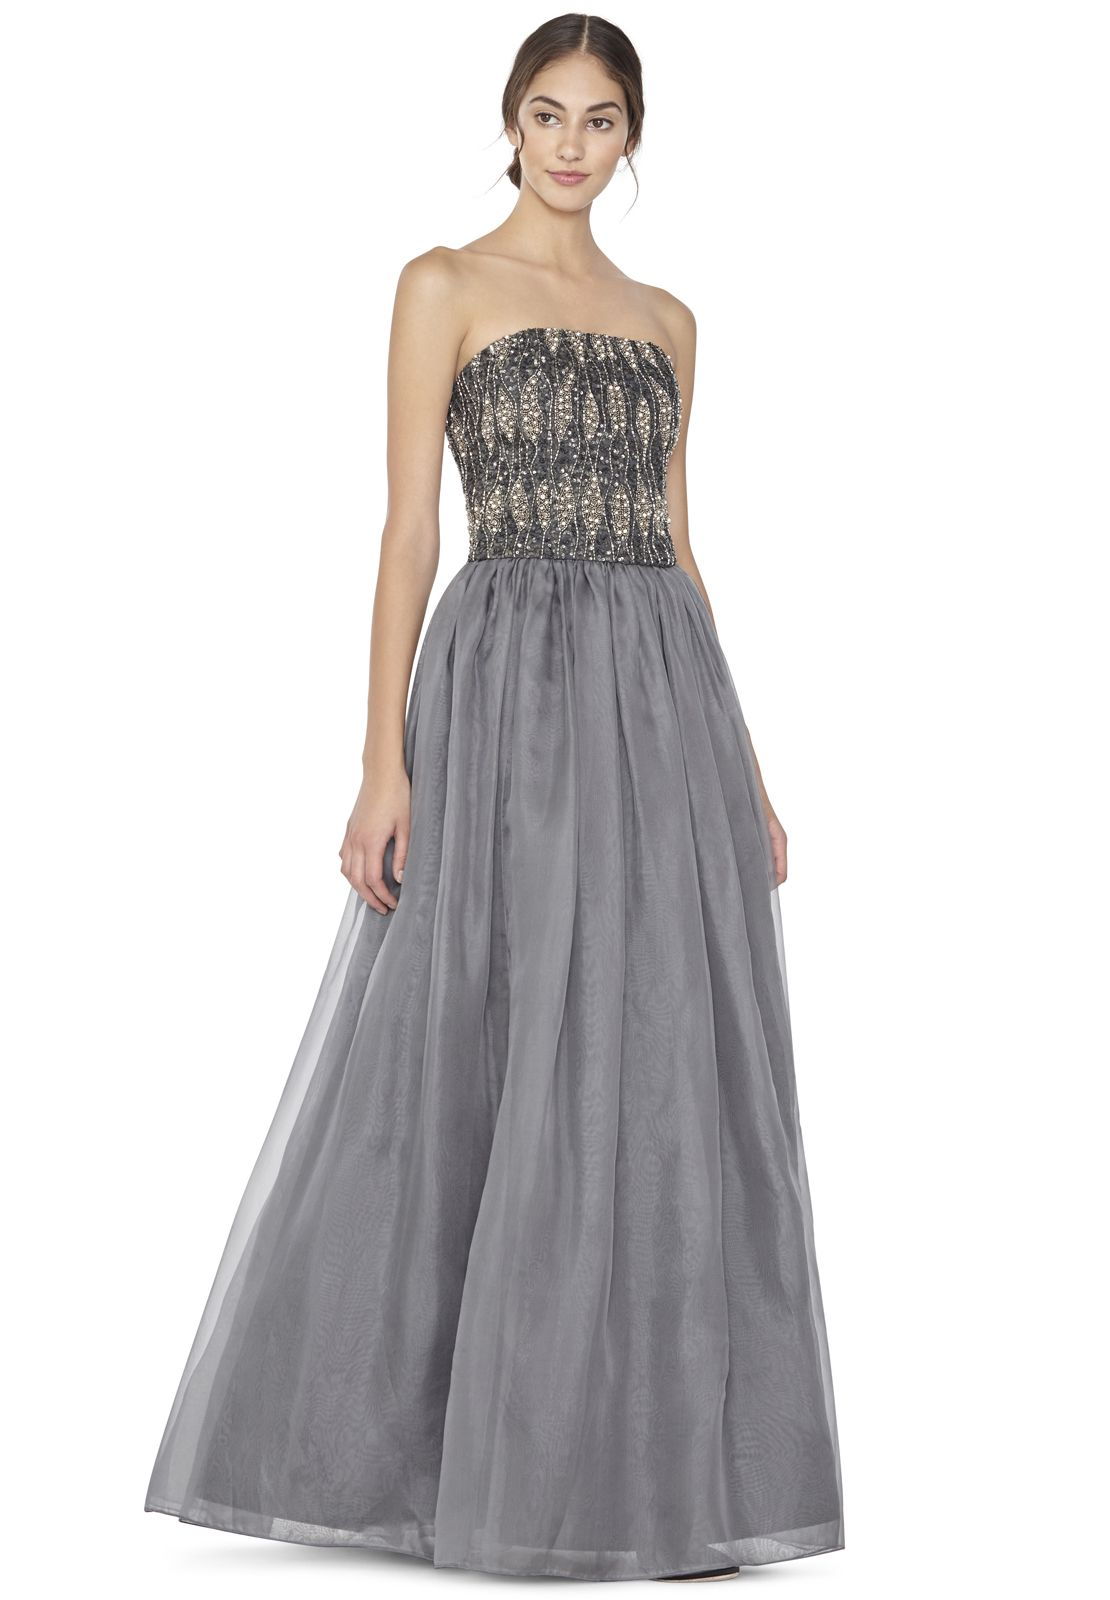 Women\'s Gray Abella Long Ball Gown Skirt | Olivia d\'abo, Gray and ...